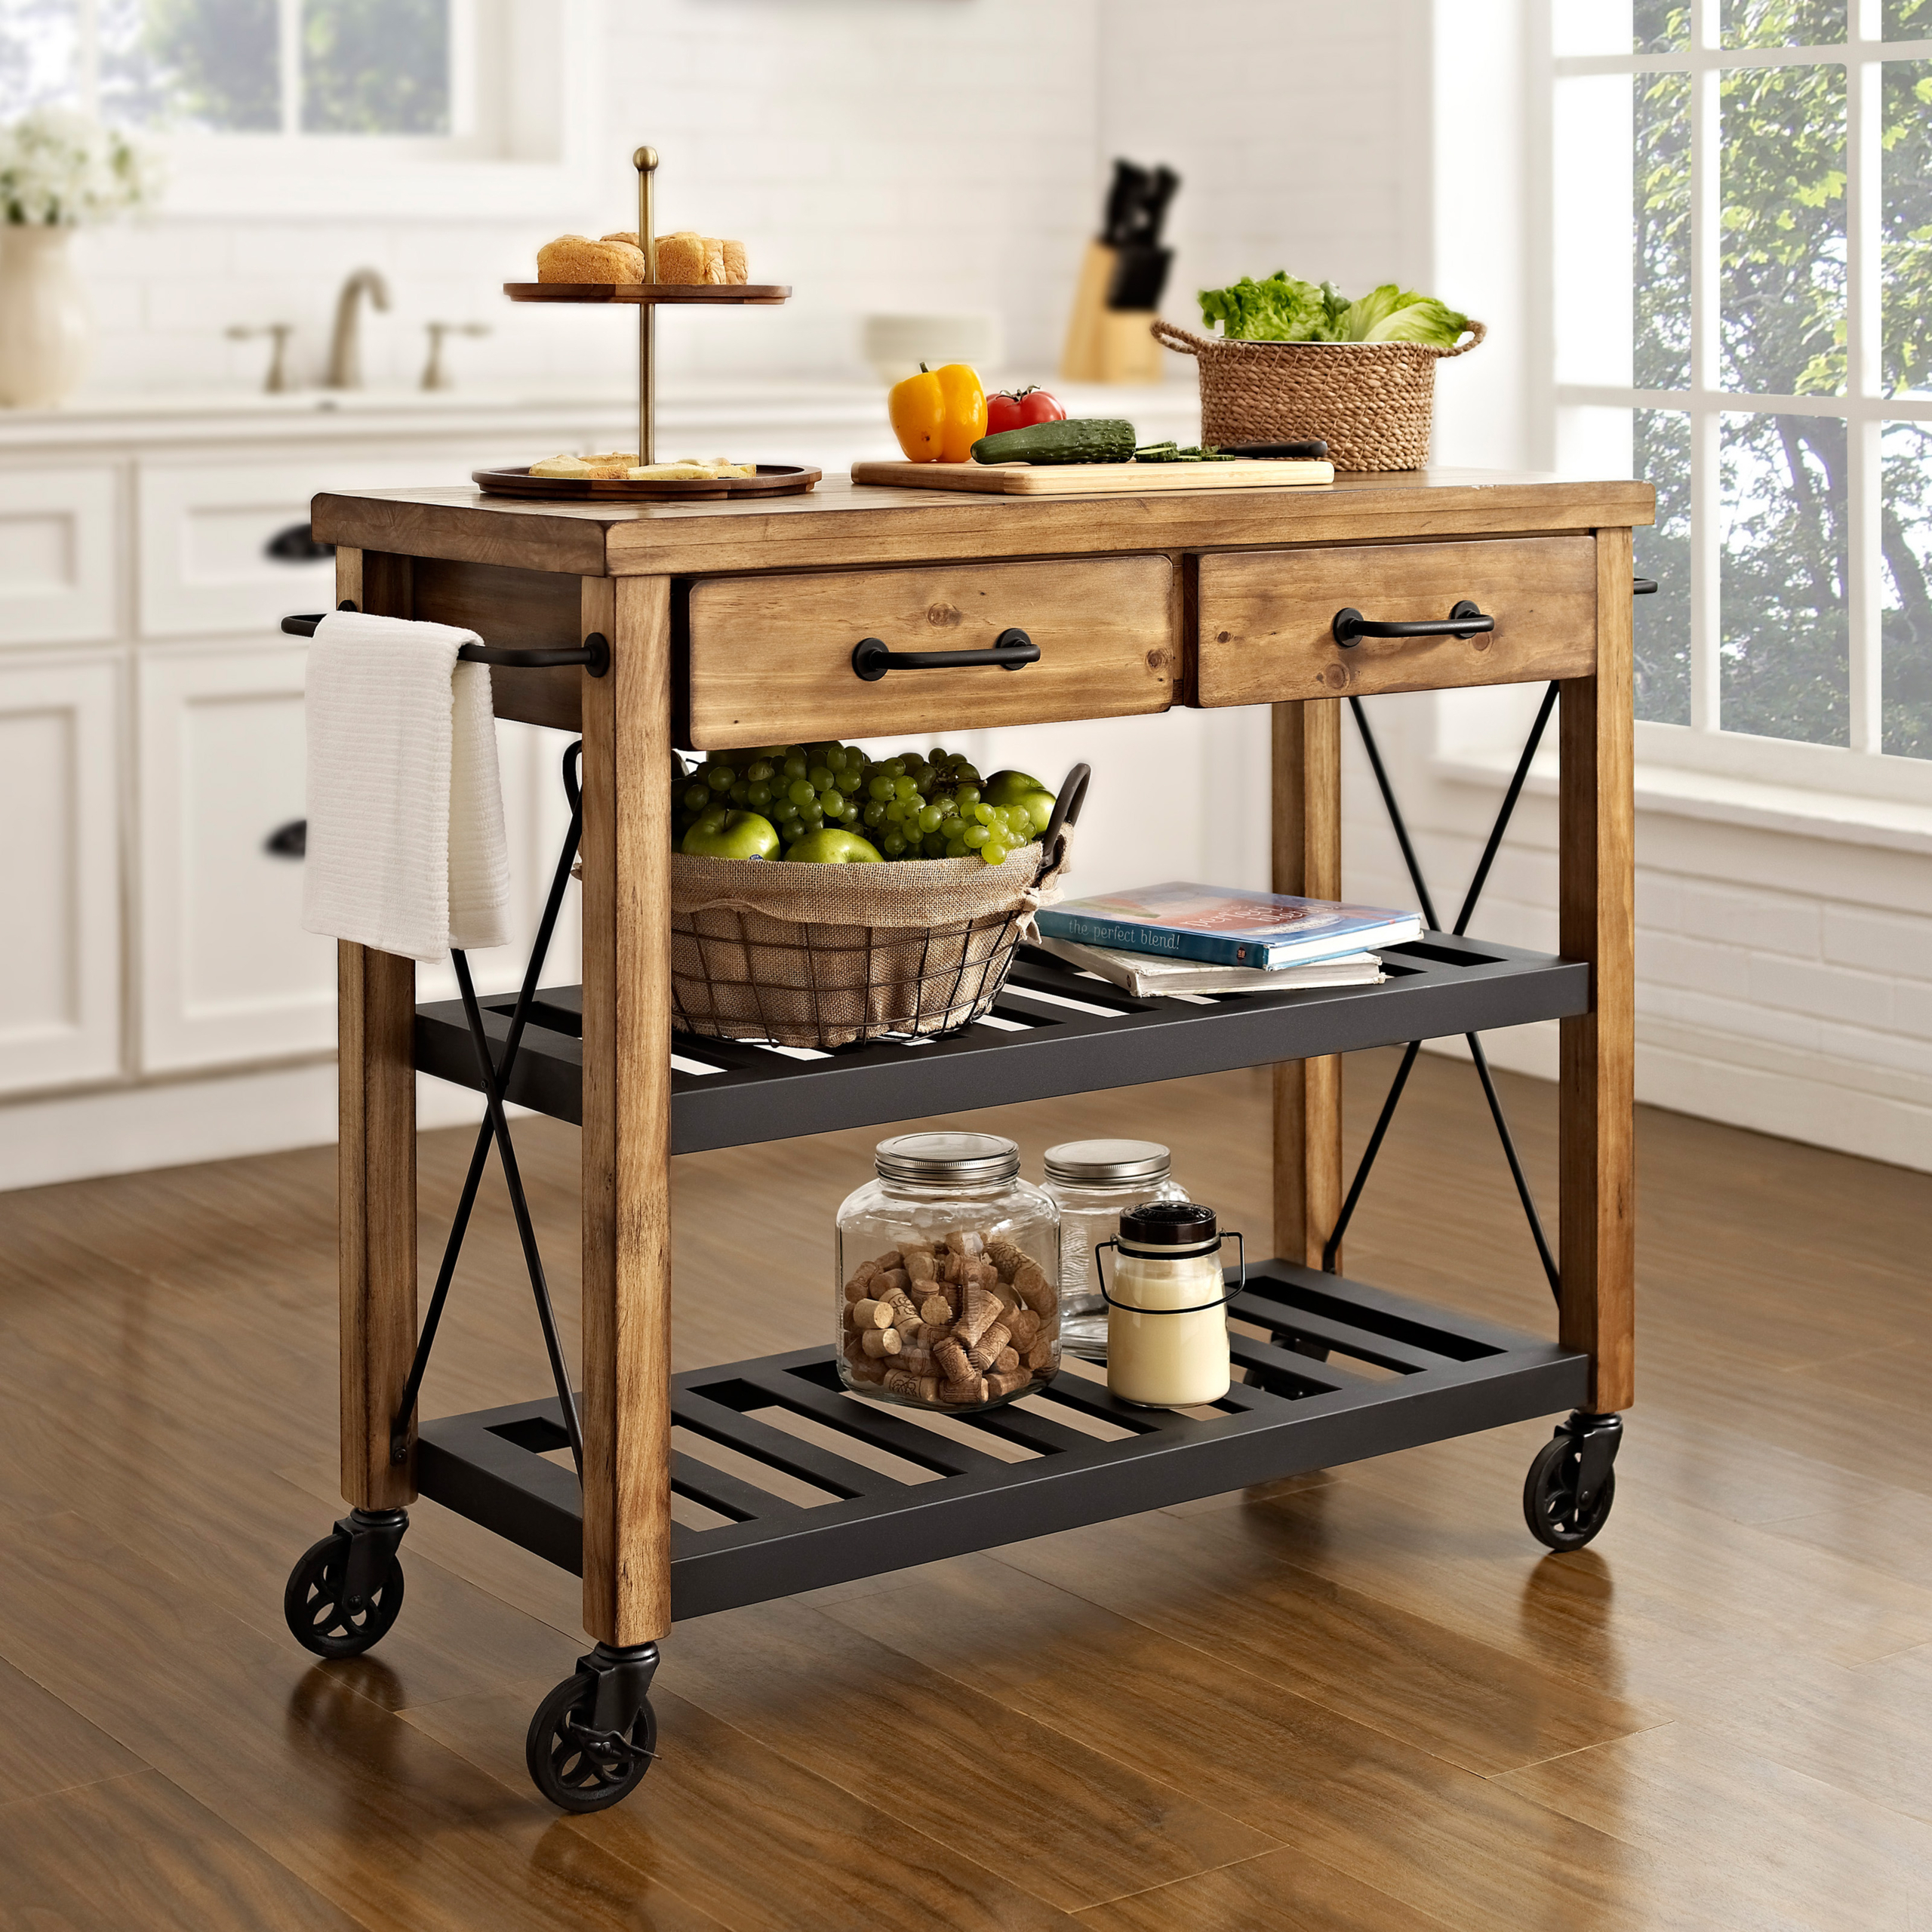 Image of: Kitchen Carts With Drawers Ideas On Foter